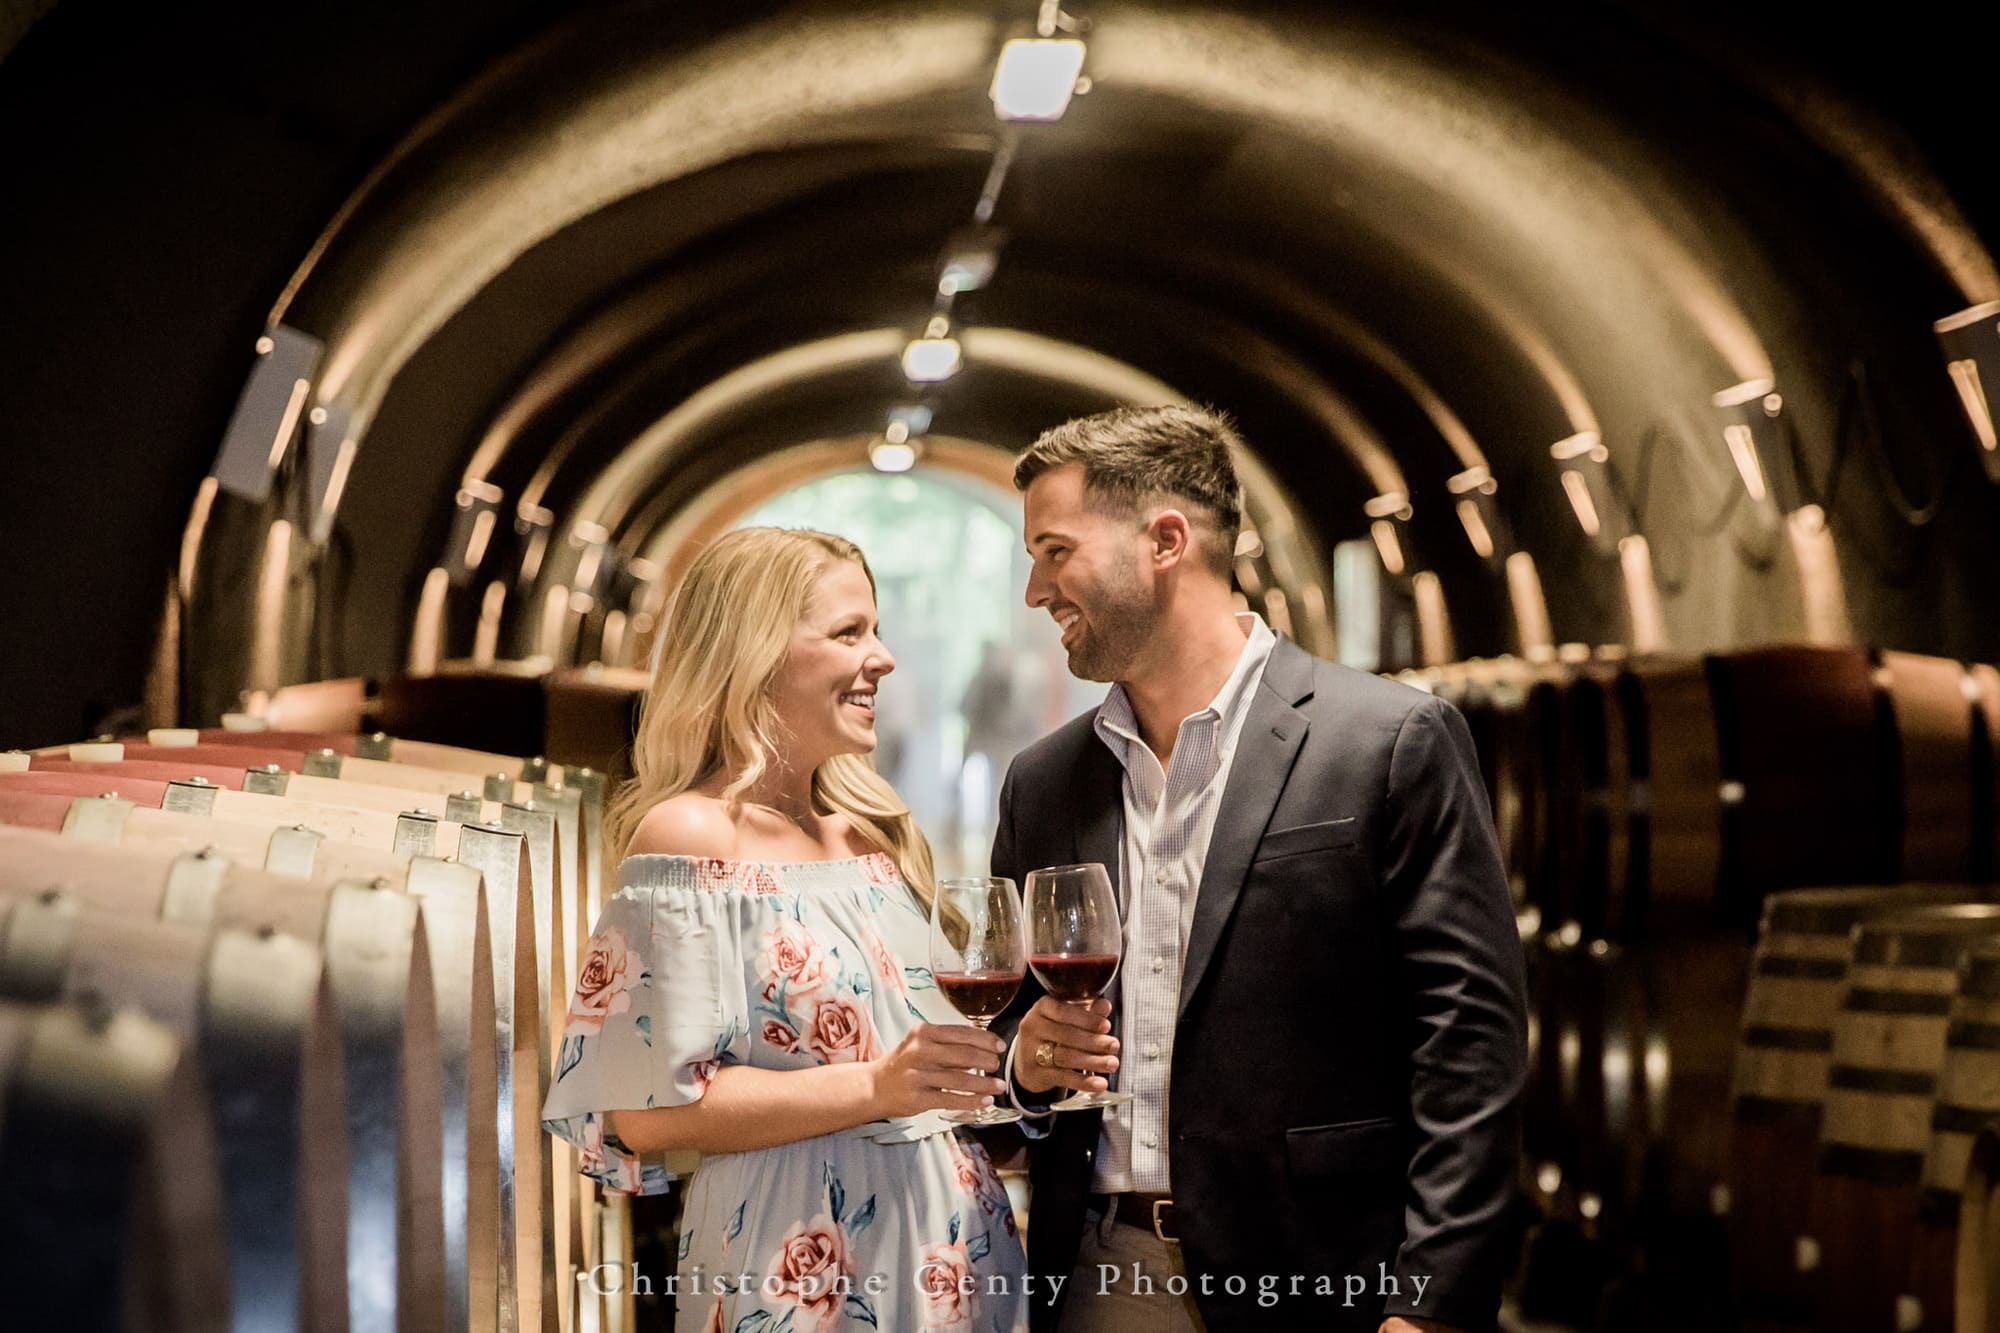 Marriage Proposal Photography in Napa -1030